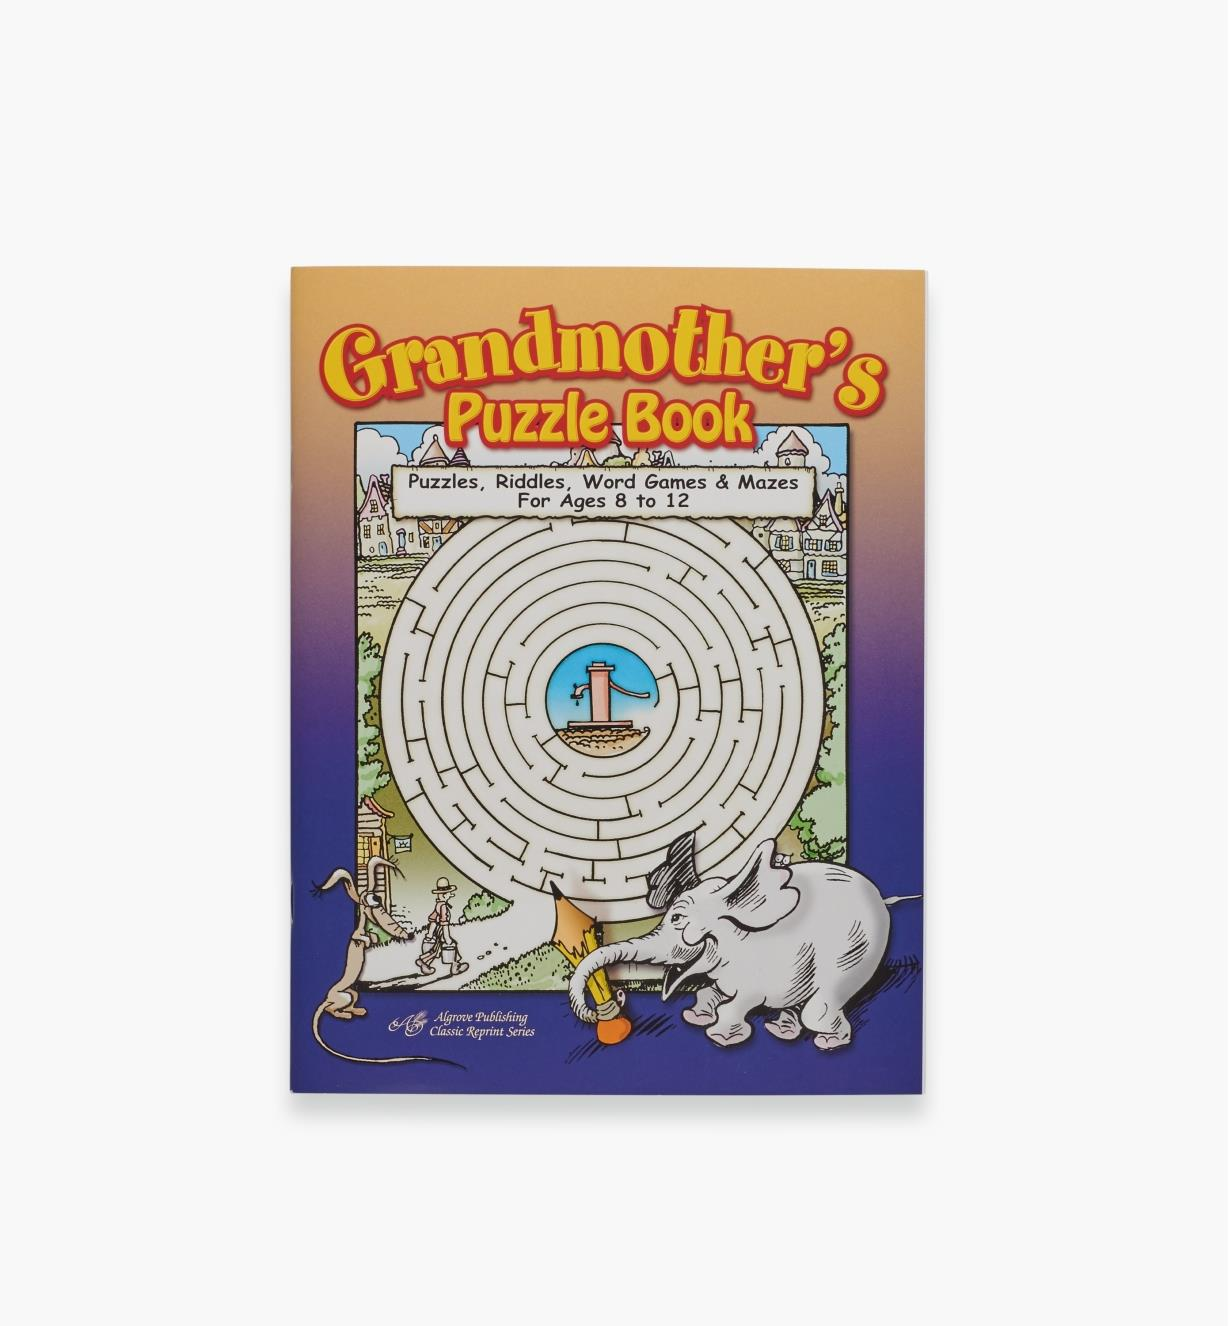 49L8103 - Grandmother's Puzzle Book